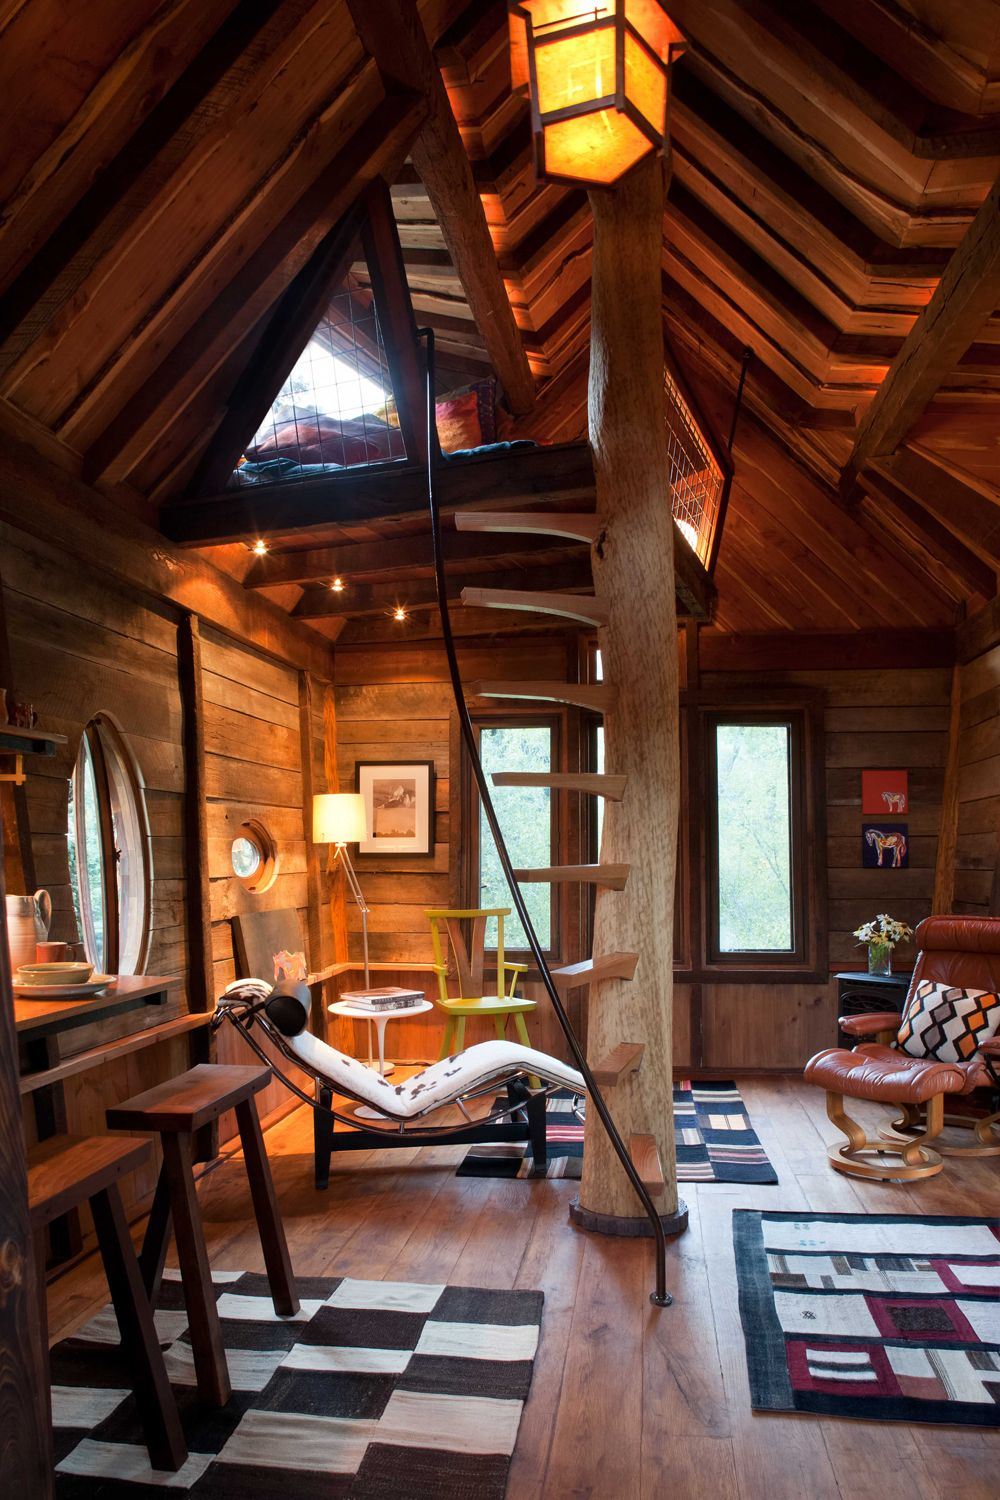 tree house interior on crystal river in colorado by architect steve novy and designer david